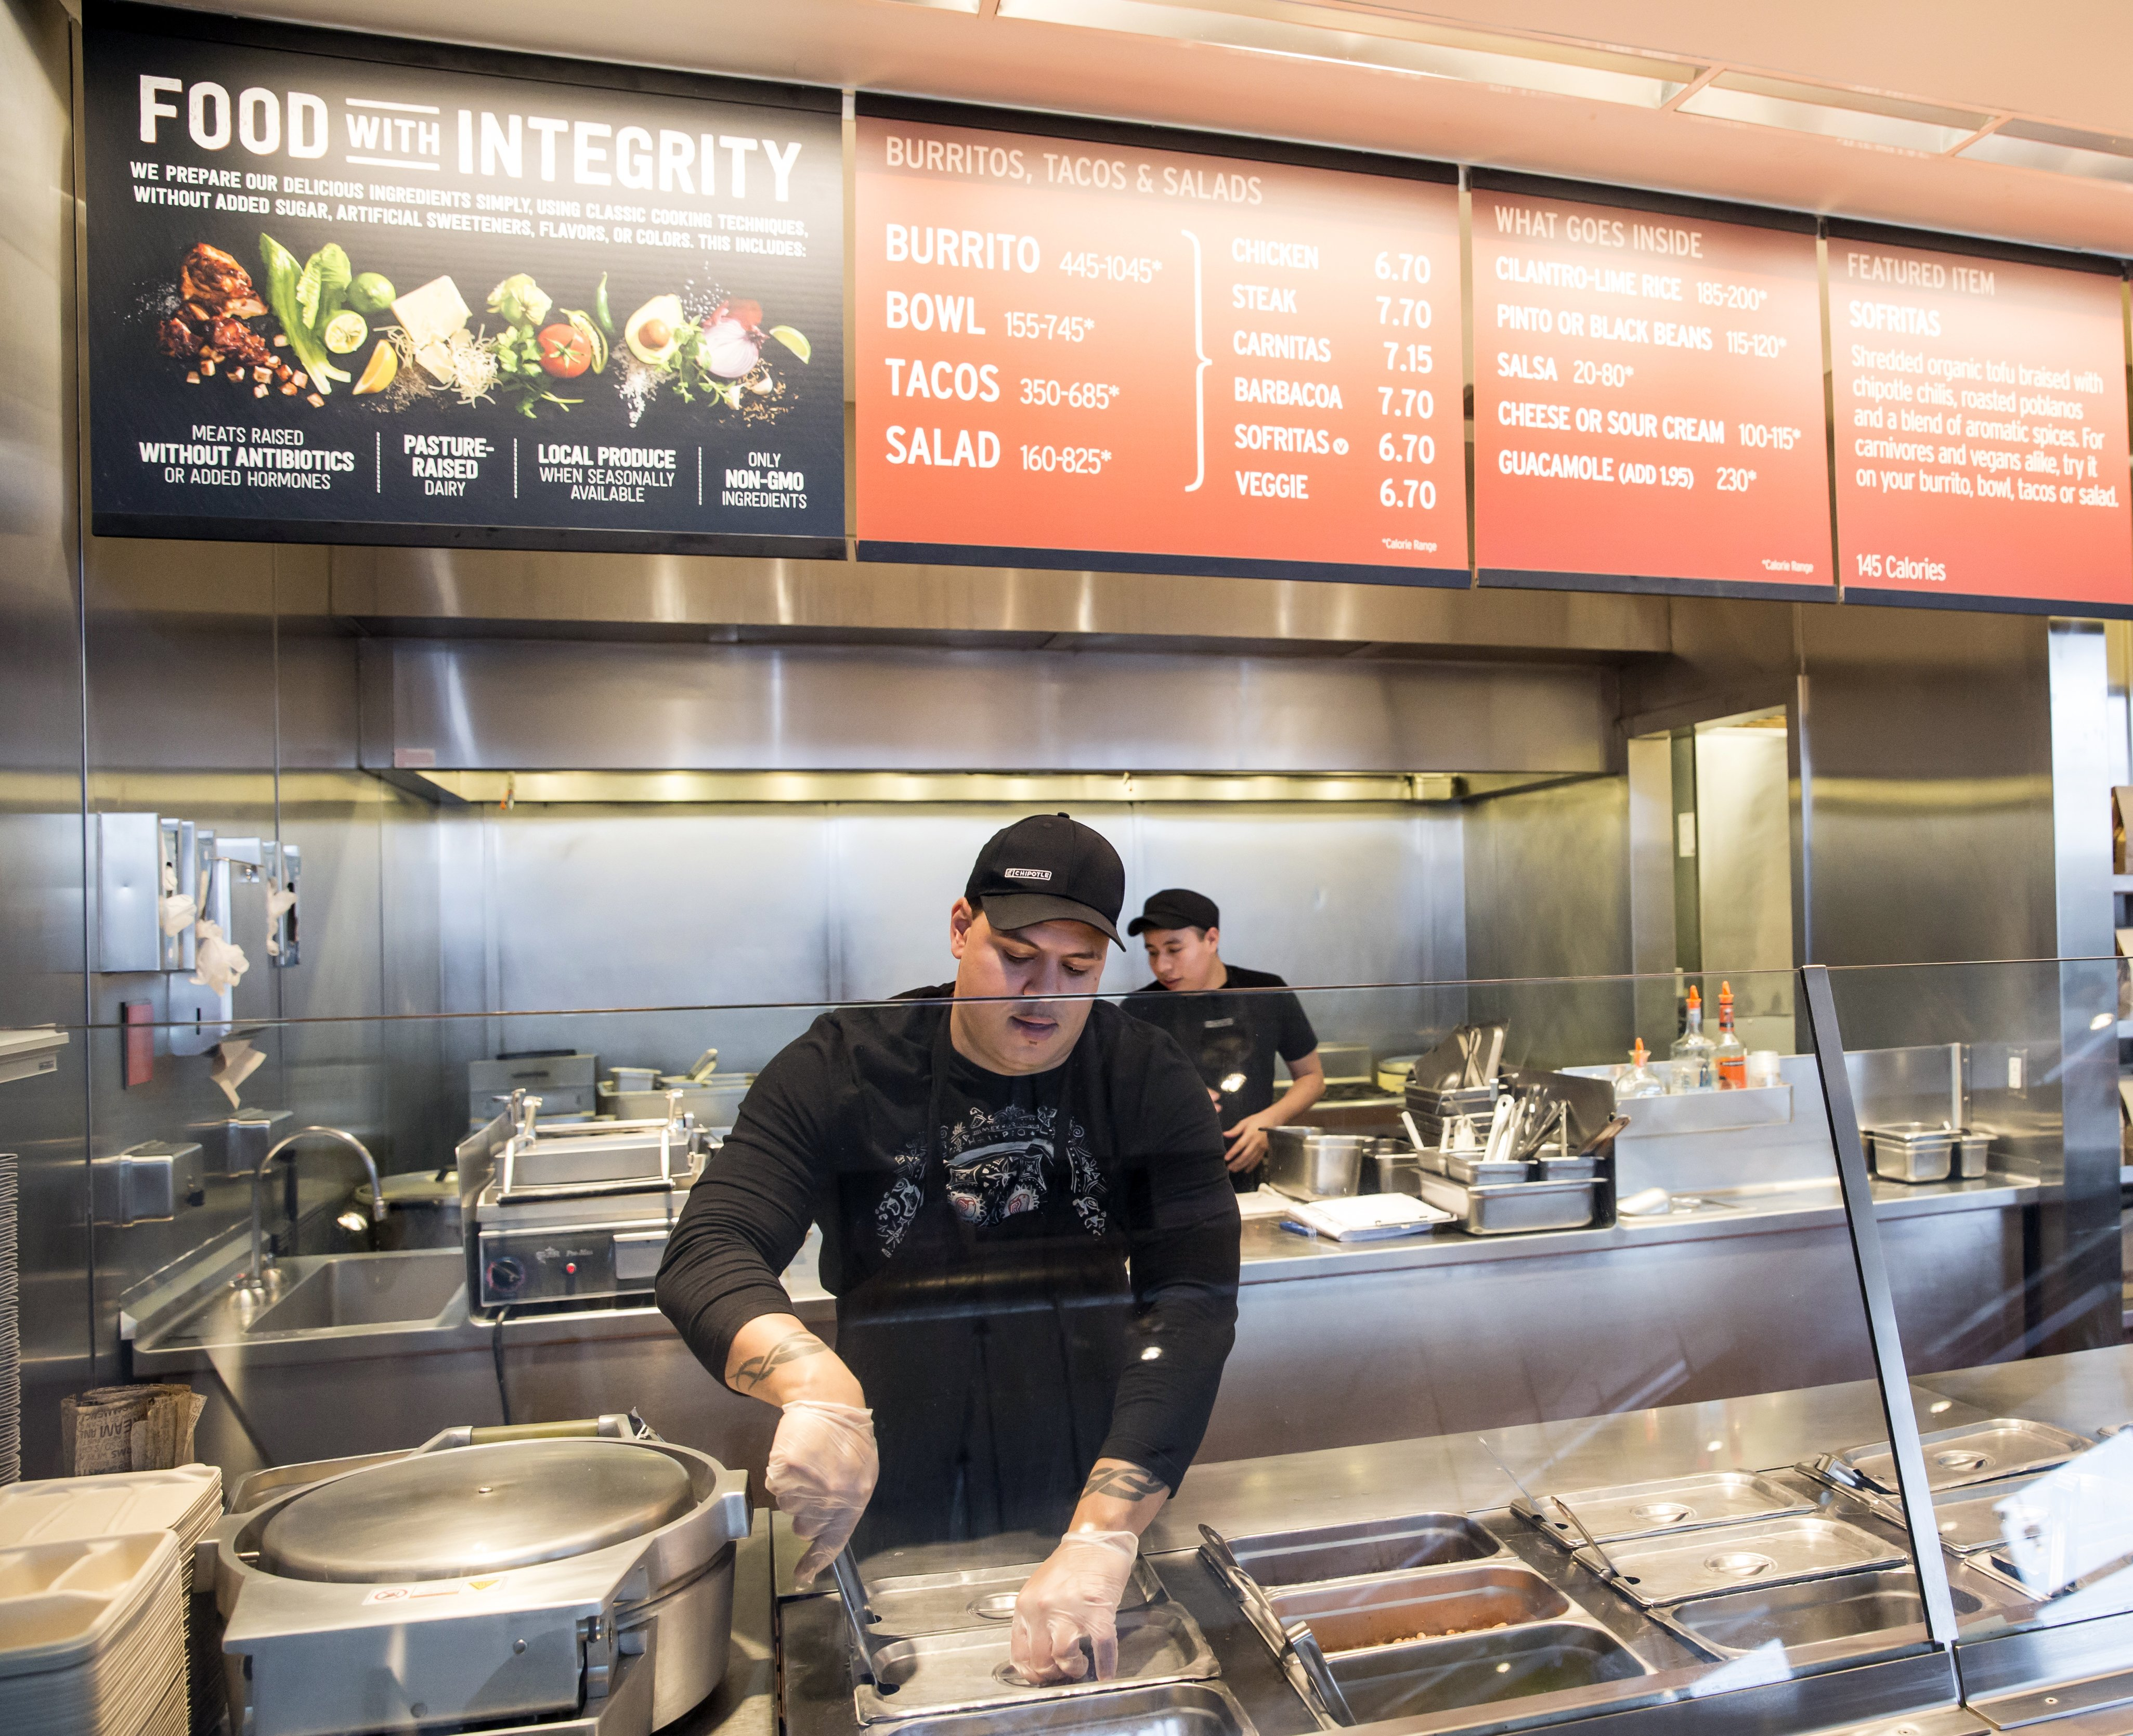 FILE - In this Dec. 15, 2015, file photo, a Chipotle Mexican Grill employee prepares food, in Seattle. After an E. coli outbreak that sickened more than 50 people, Chipotle is changing its cooking methods to prevent the nightmare situation from happening again. (AP Photo/Stephen Brashear, File)